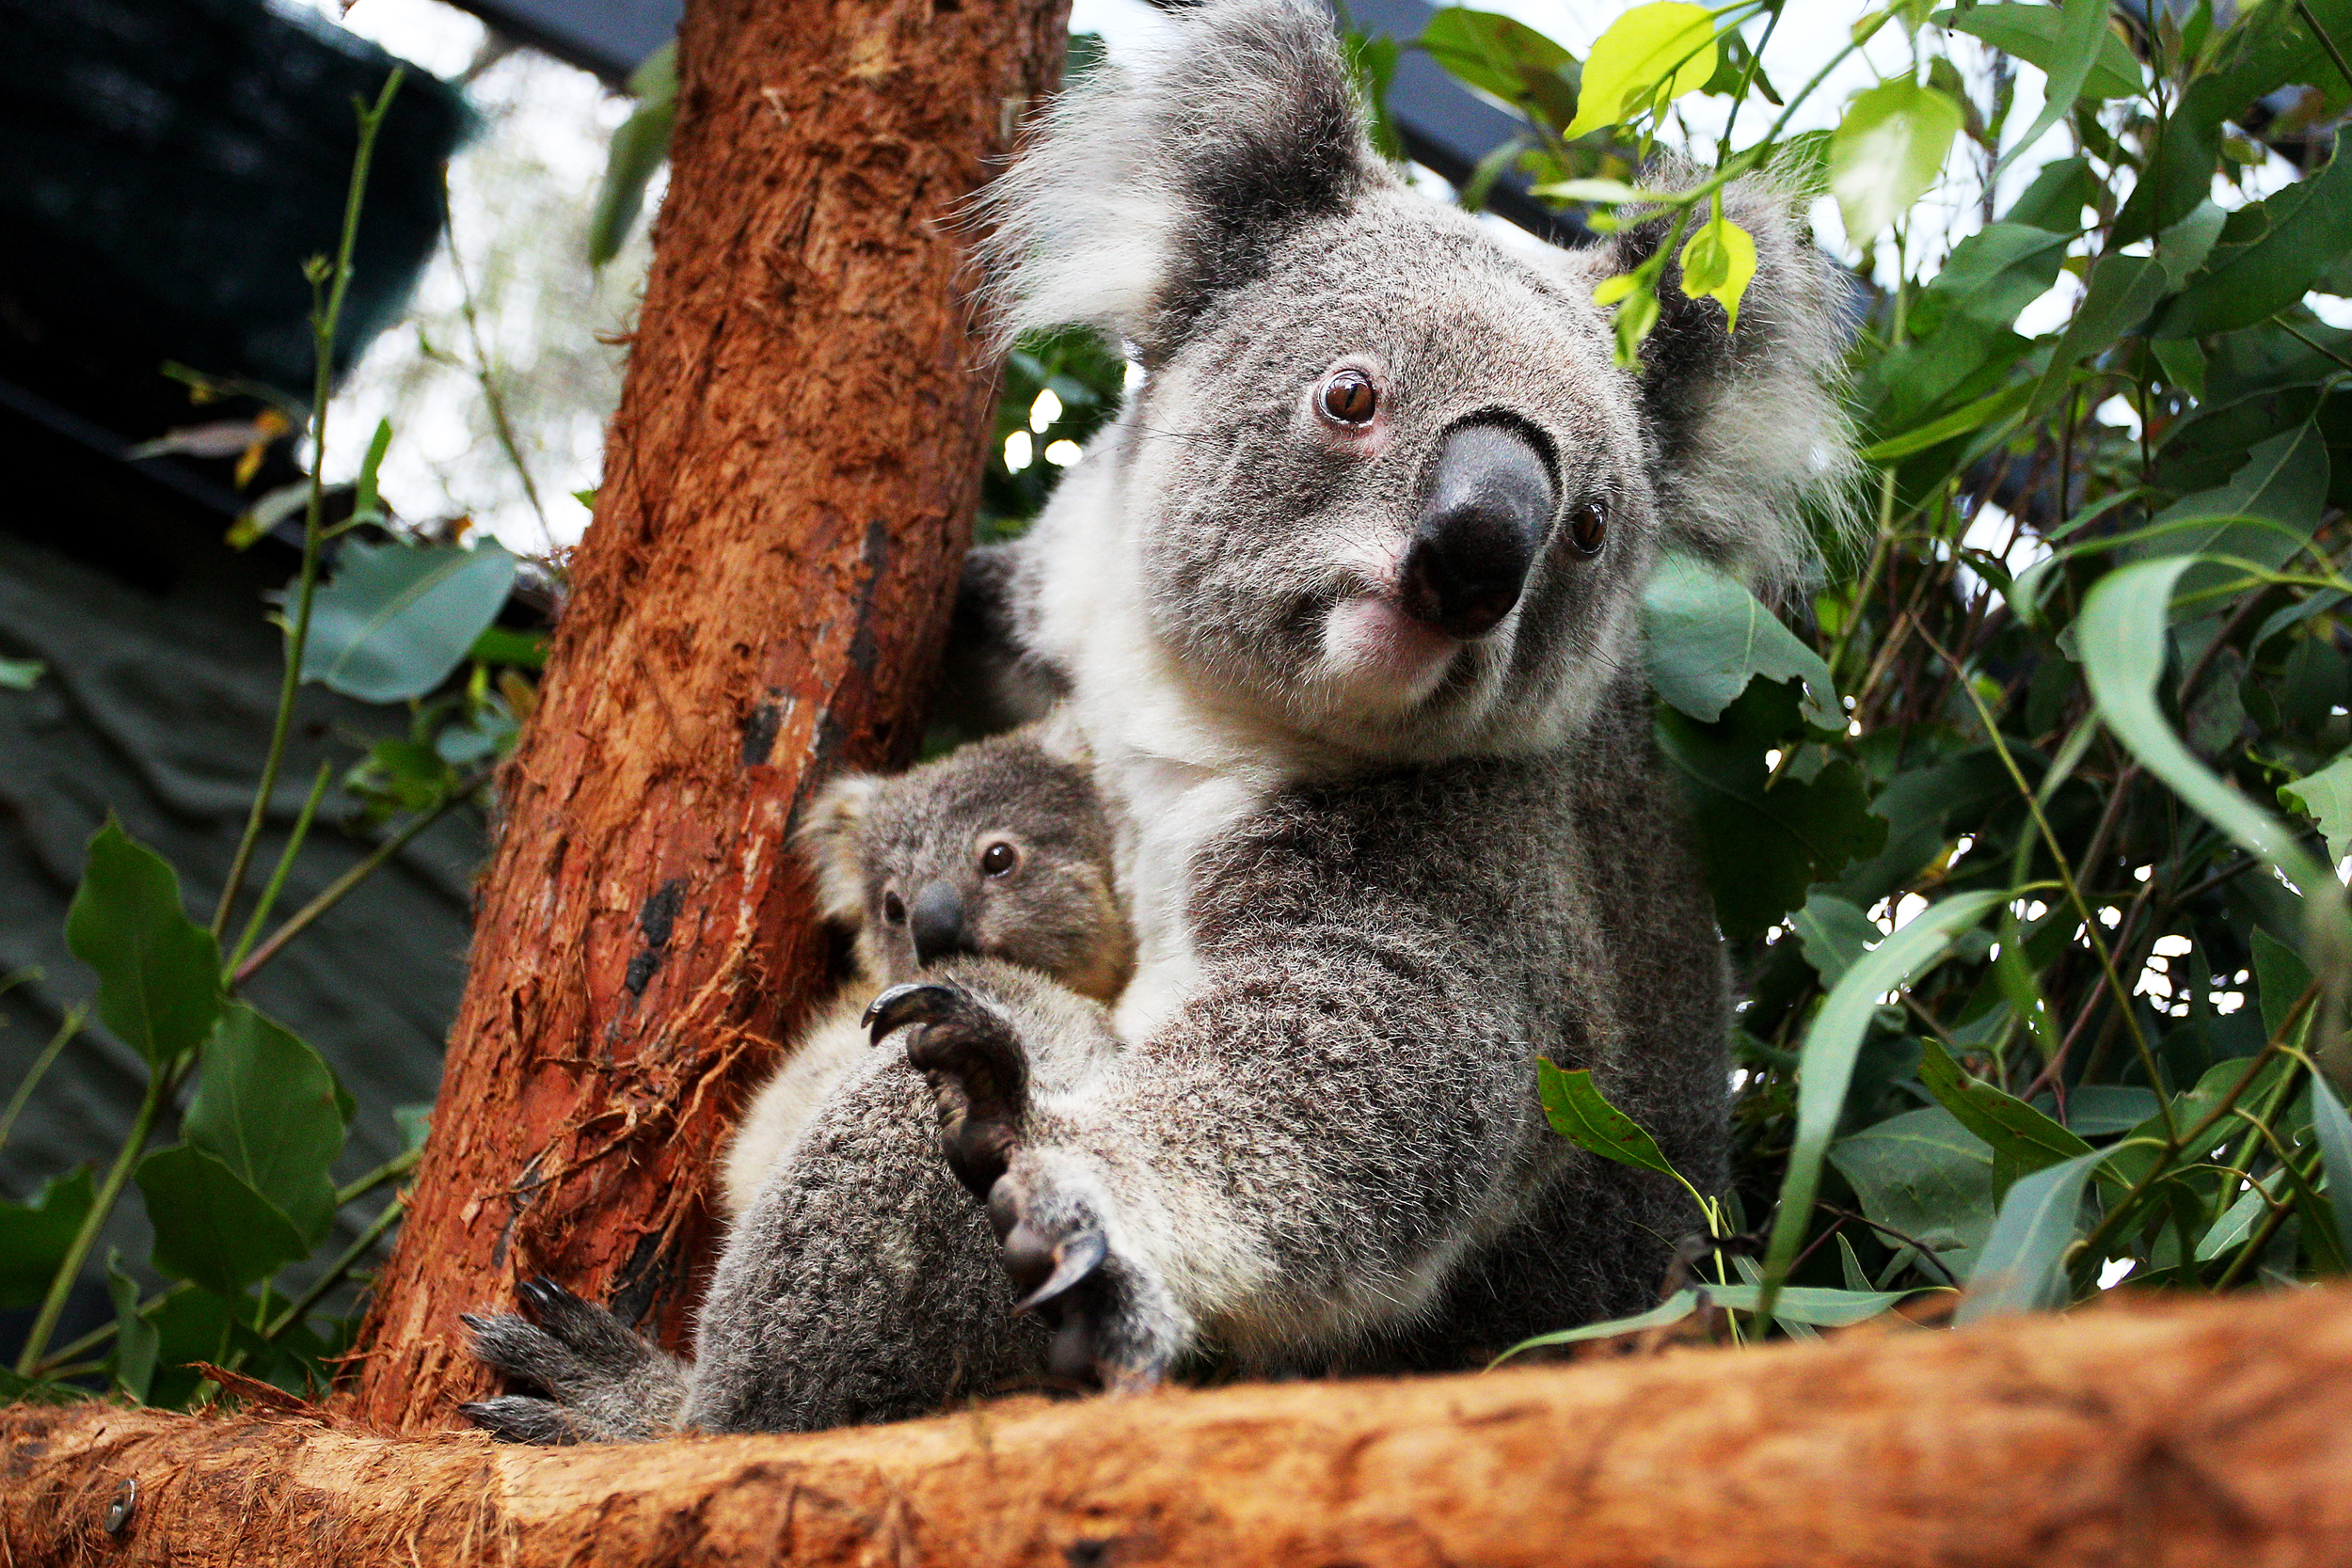 Australia's koalas are in trouble. The question is how much.